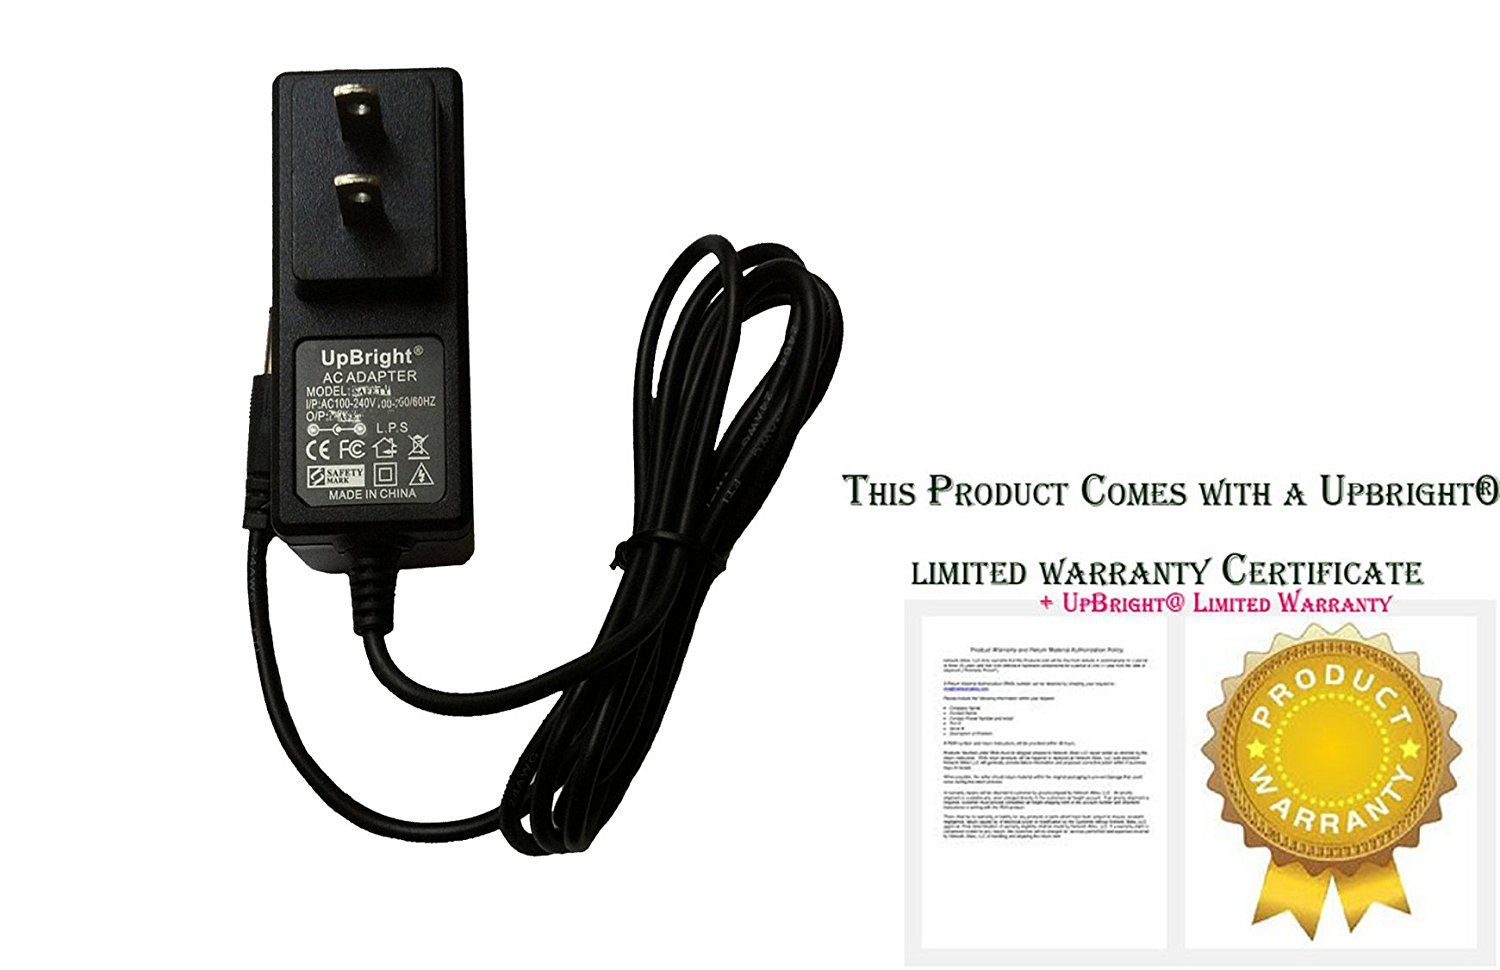 Upbright New Ac Dc Adapter For Sunfone Acw018a3 12u Power Supply Cord Cable Ps Wall Home Charger Input 100 In 2020 Cable Charger Charger Accessories Battery Charger